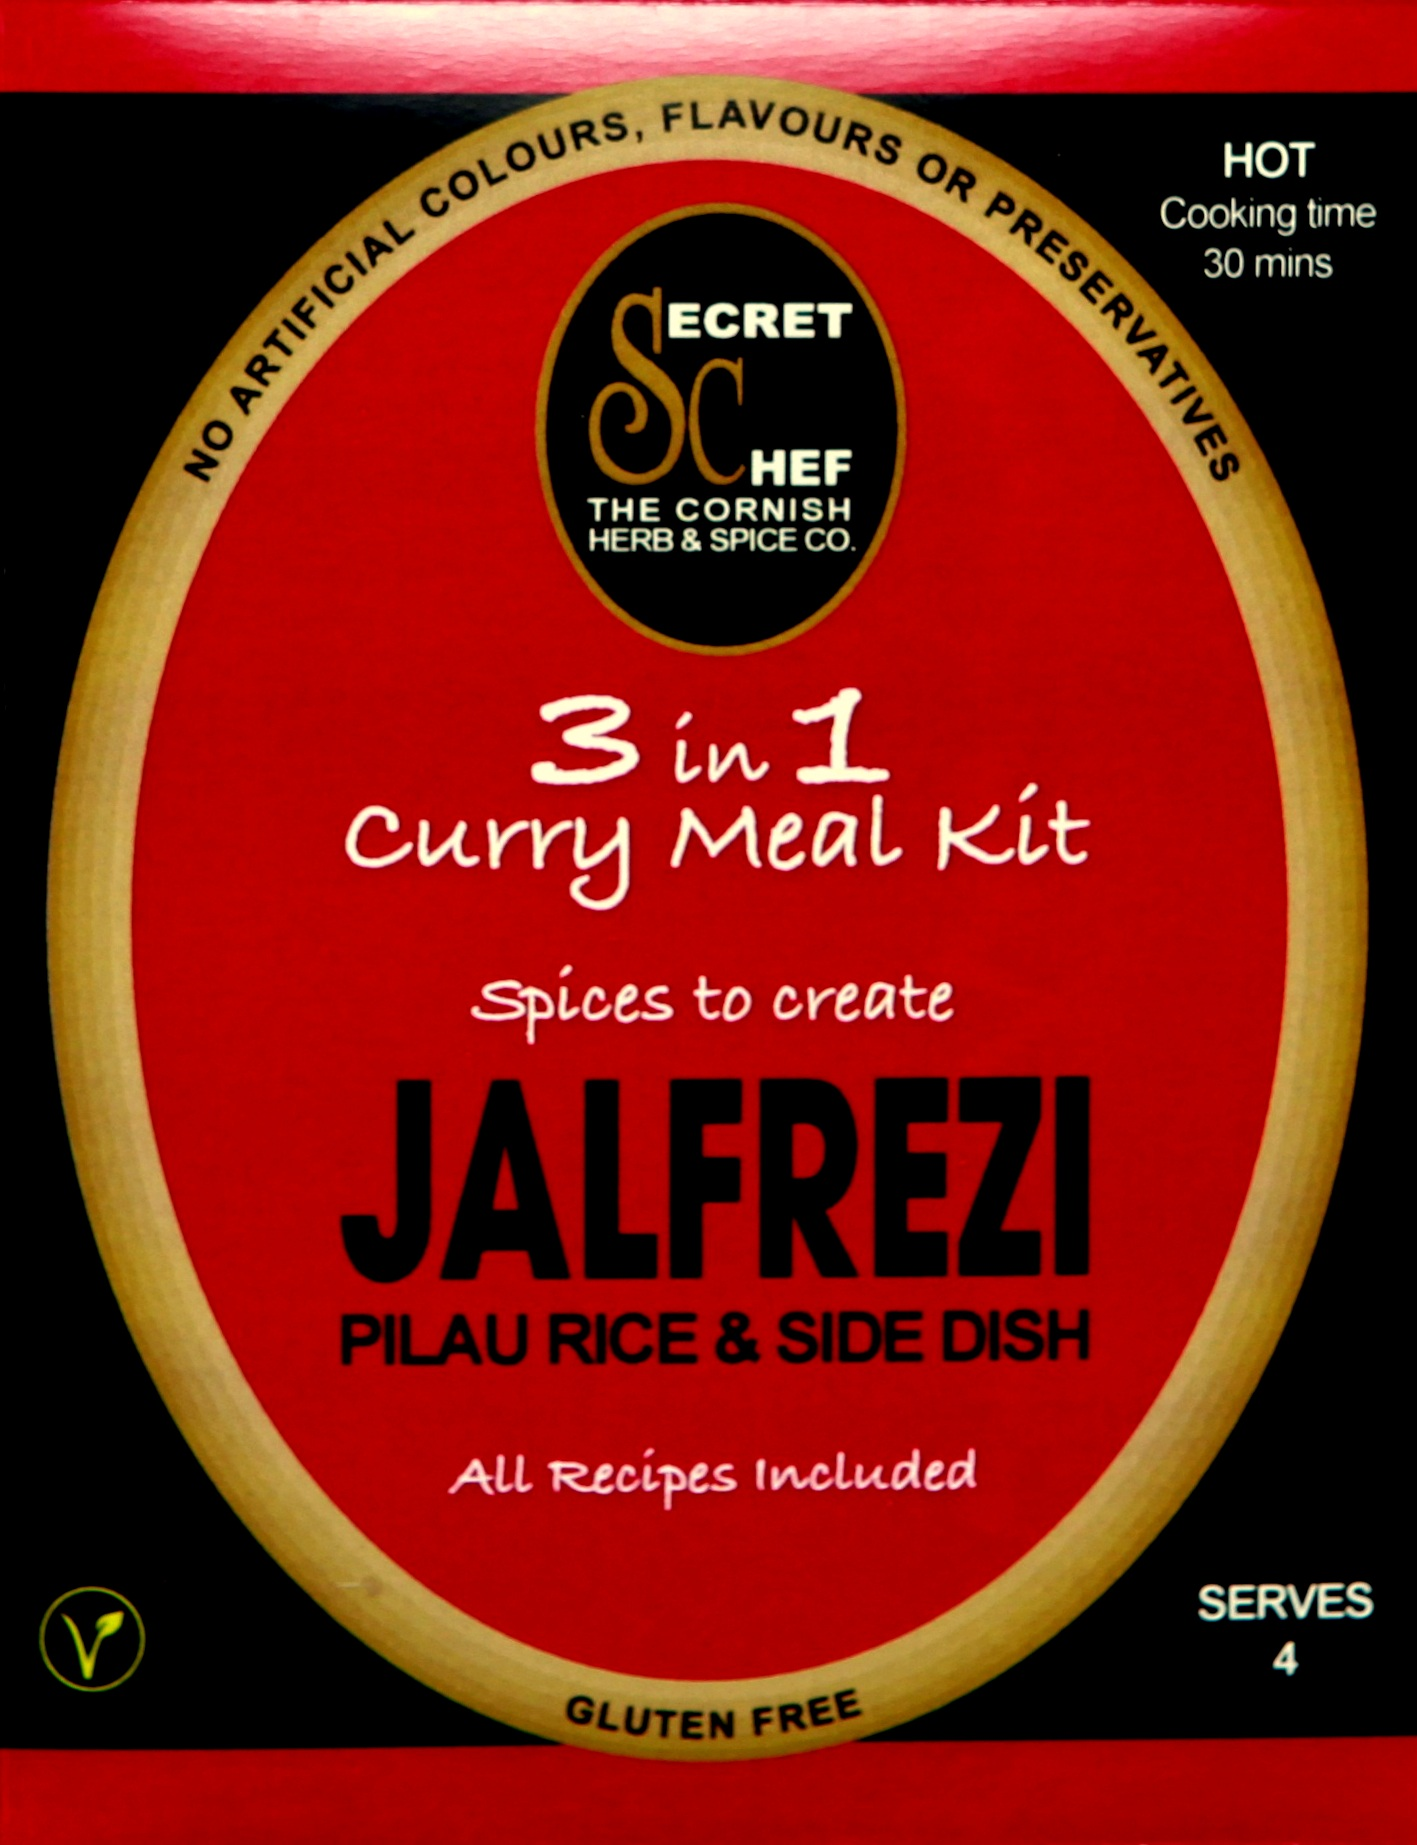 Jalfrezi Curry Meal Kit